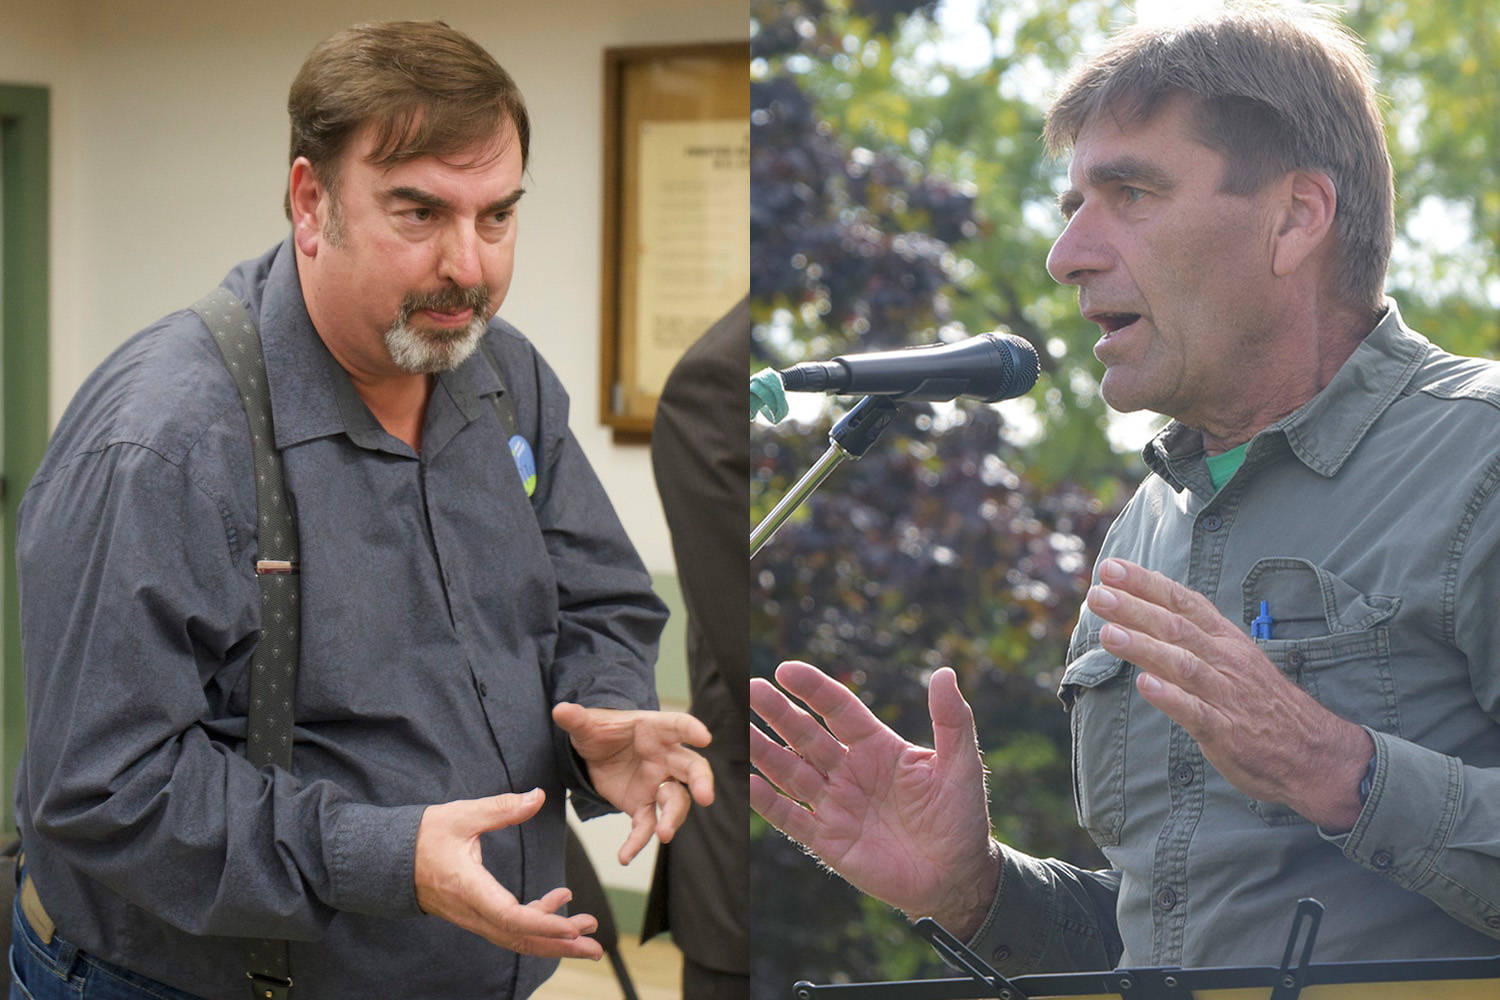 Okanagan Green Party candidates Robert Mellalieu (left) and Marc Reinarz (right) have both been called out by NDP for comments they made about abortion. (File)